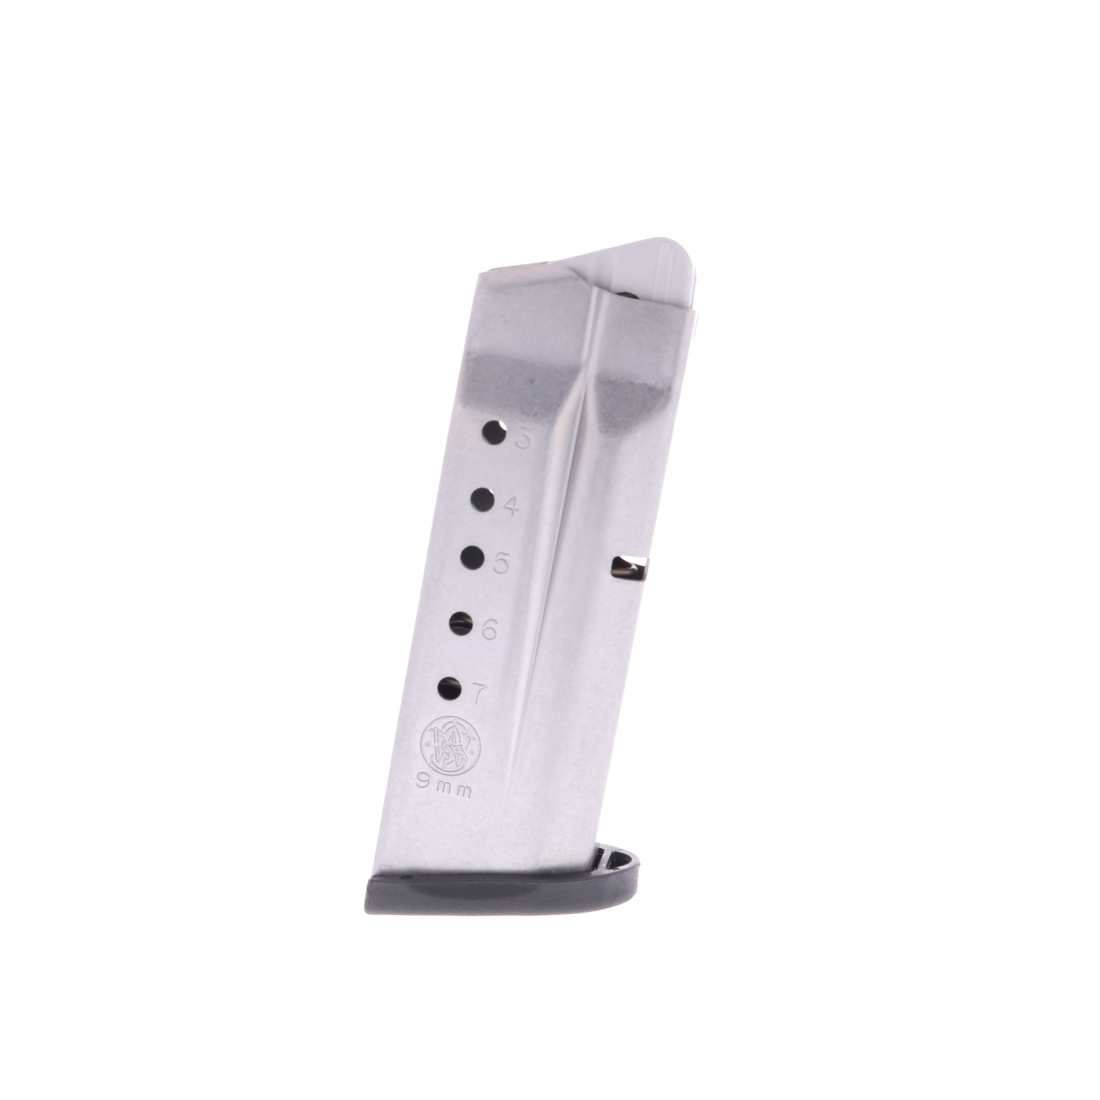 Smith & Wesson S&W M&P Shield 9mm Luger 7-Round Stainless Steel Factory Magazine